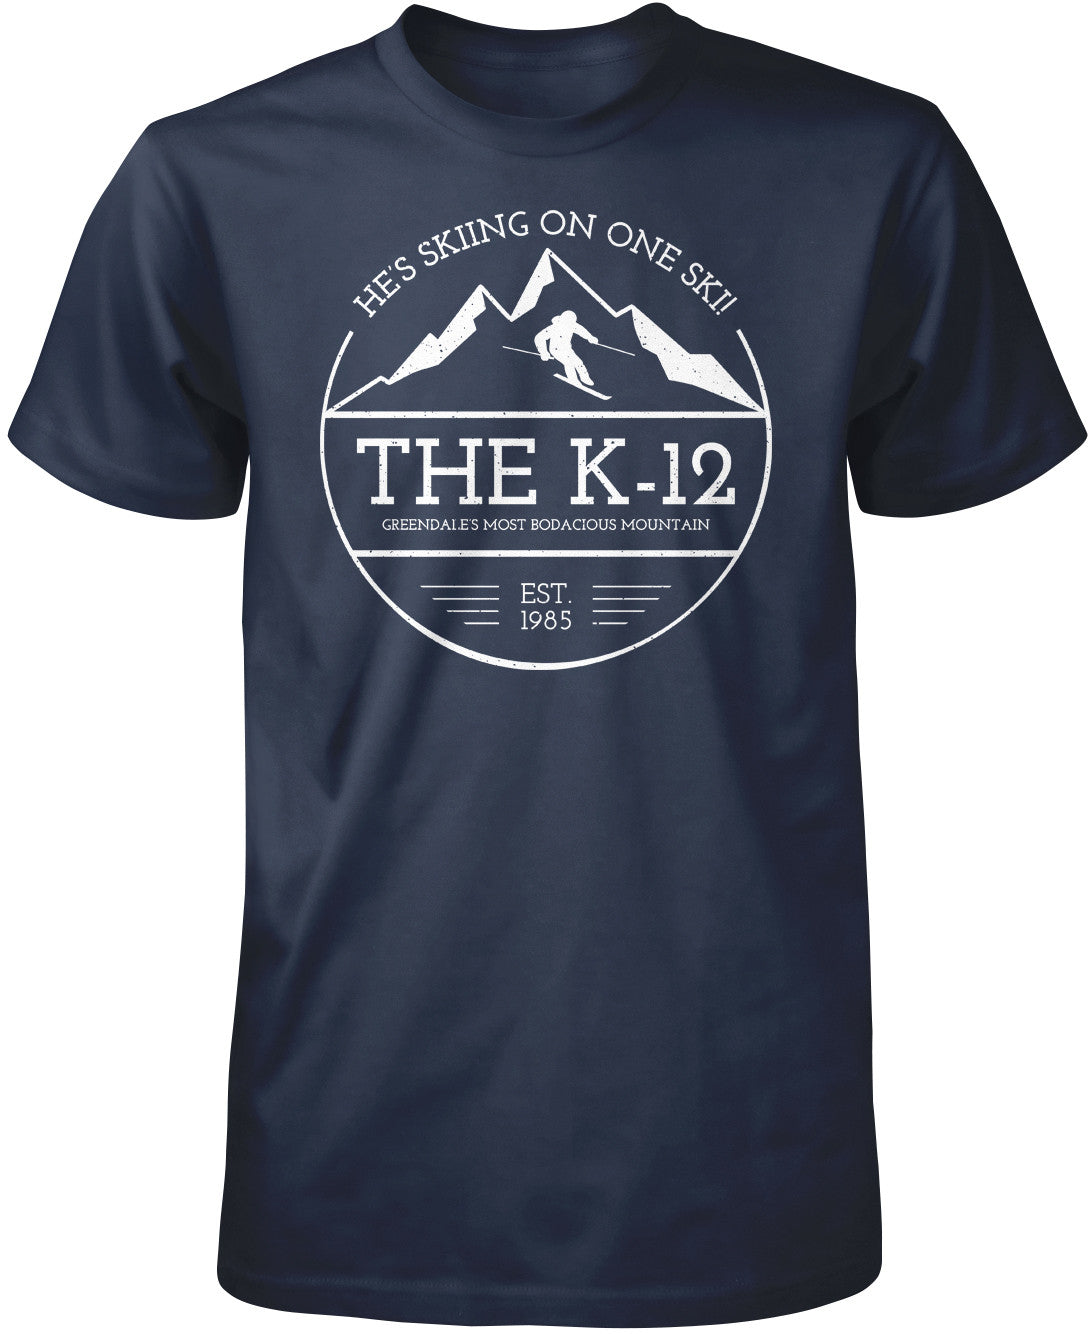 The K-12 - He's Skiing On One Ski T-Shirt